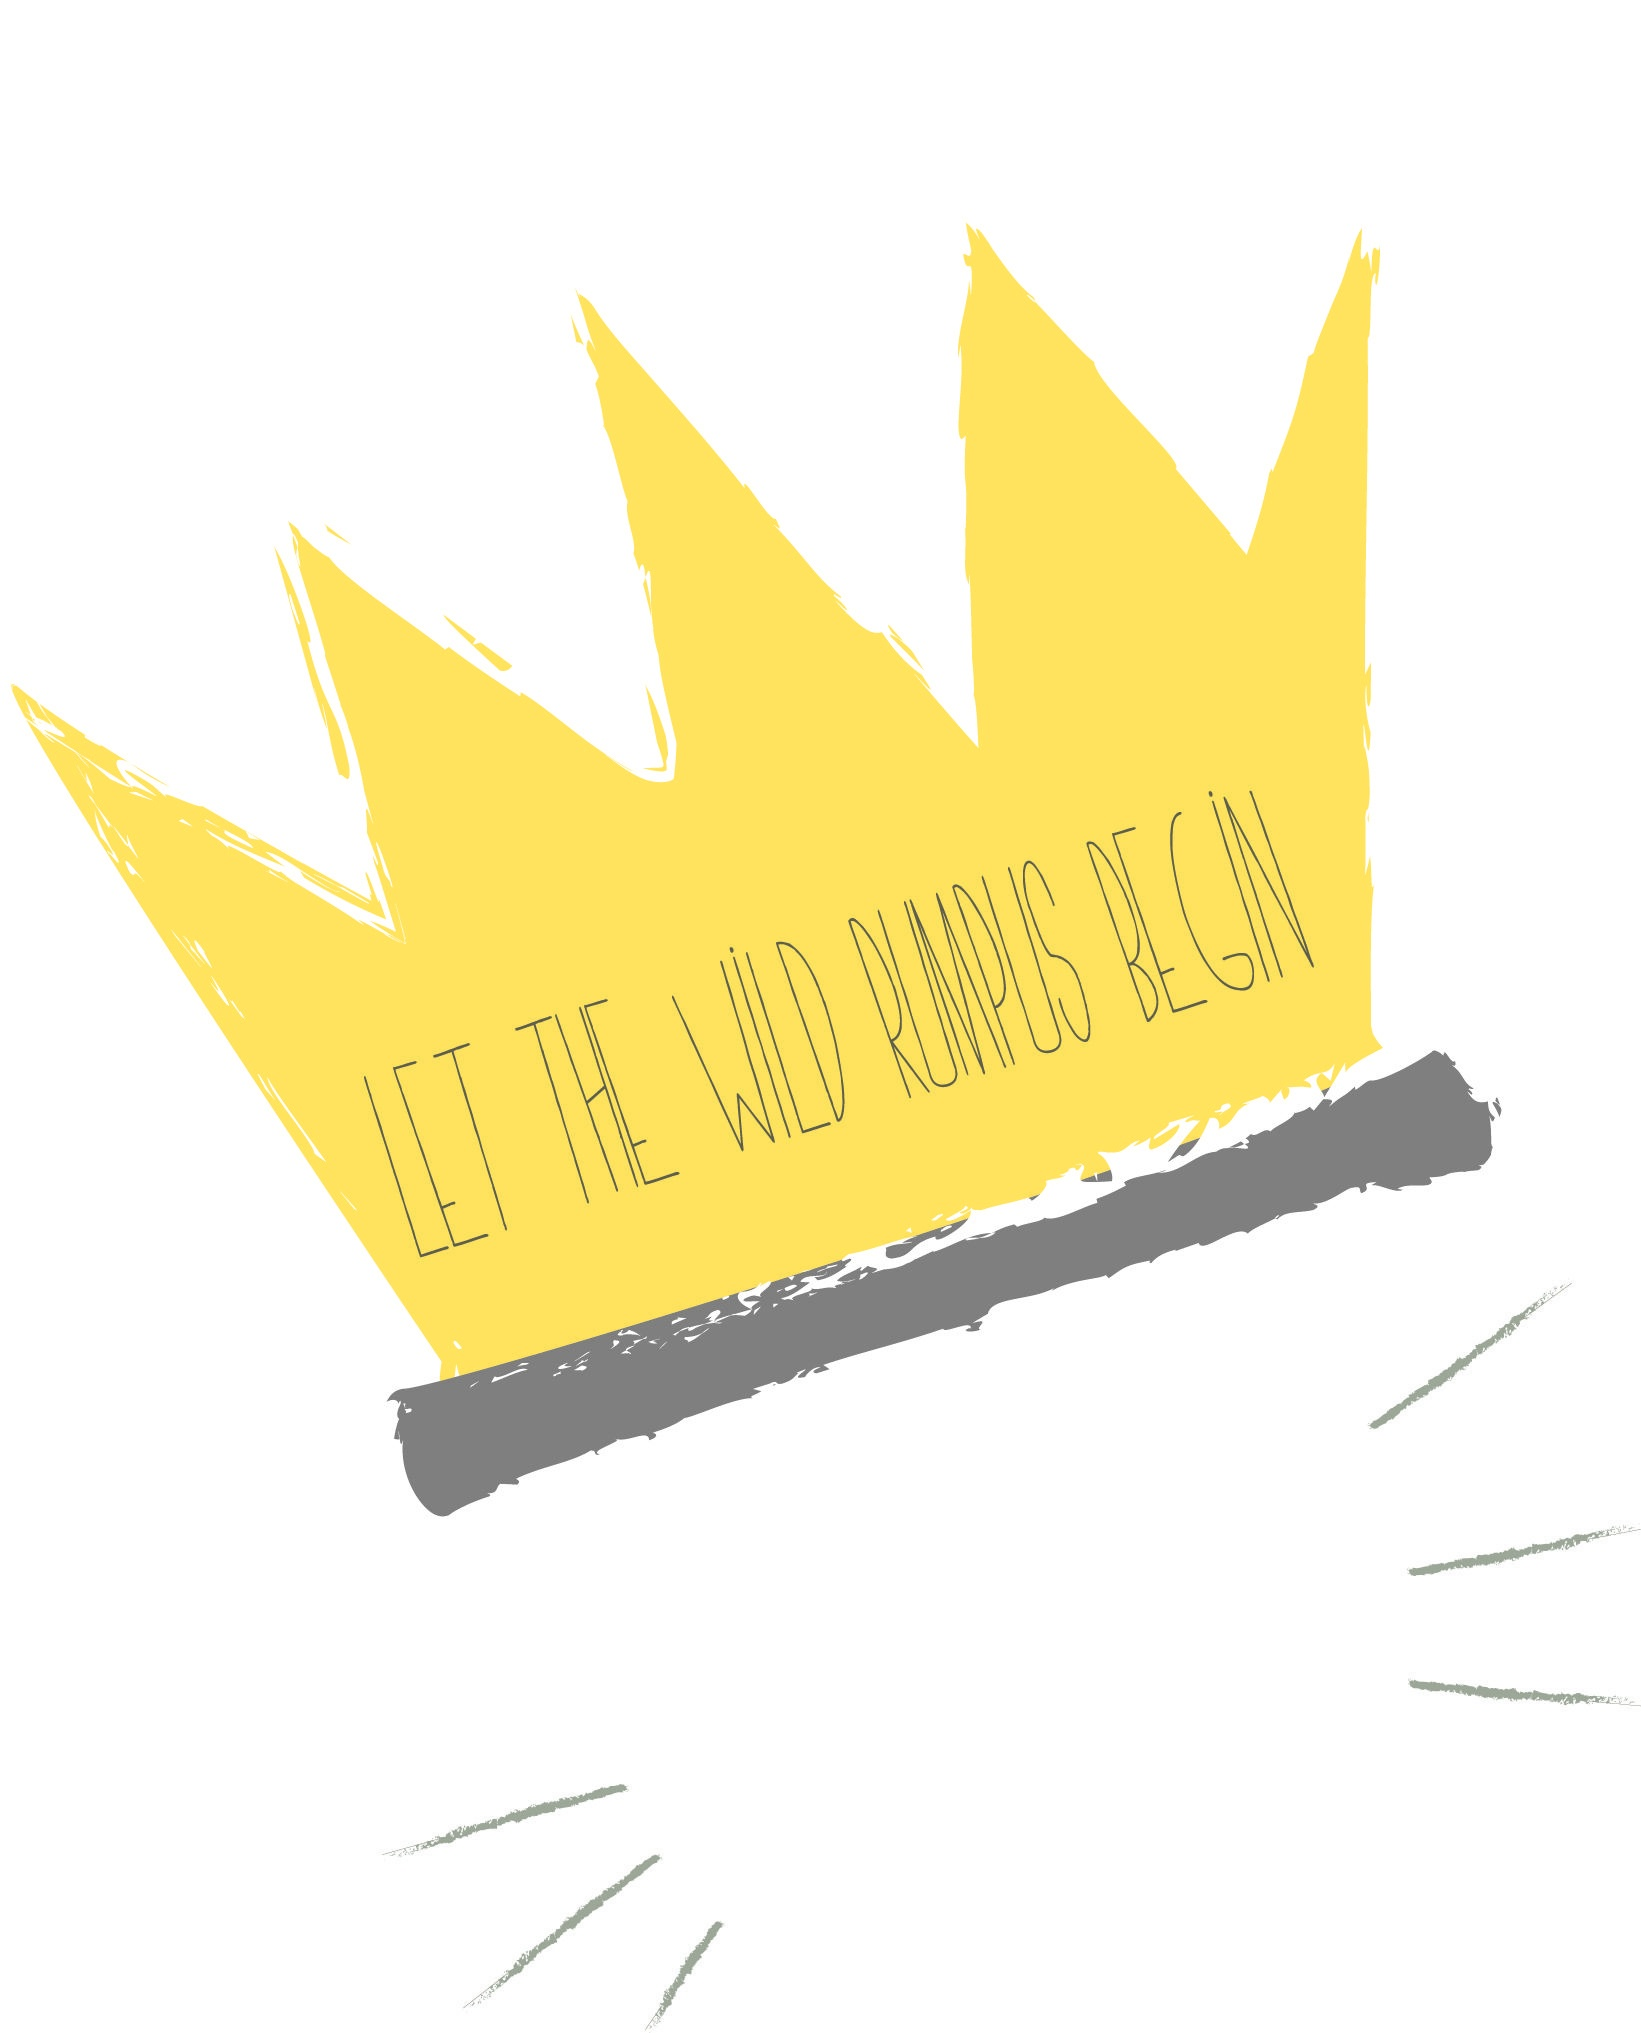 Free Where The Wild Things Are Printableroro The Destroyer - Where The Wild Things Are Printables For Free